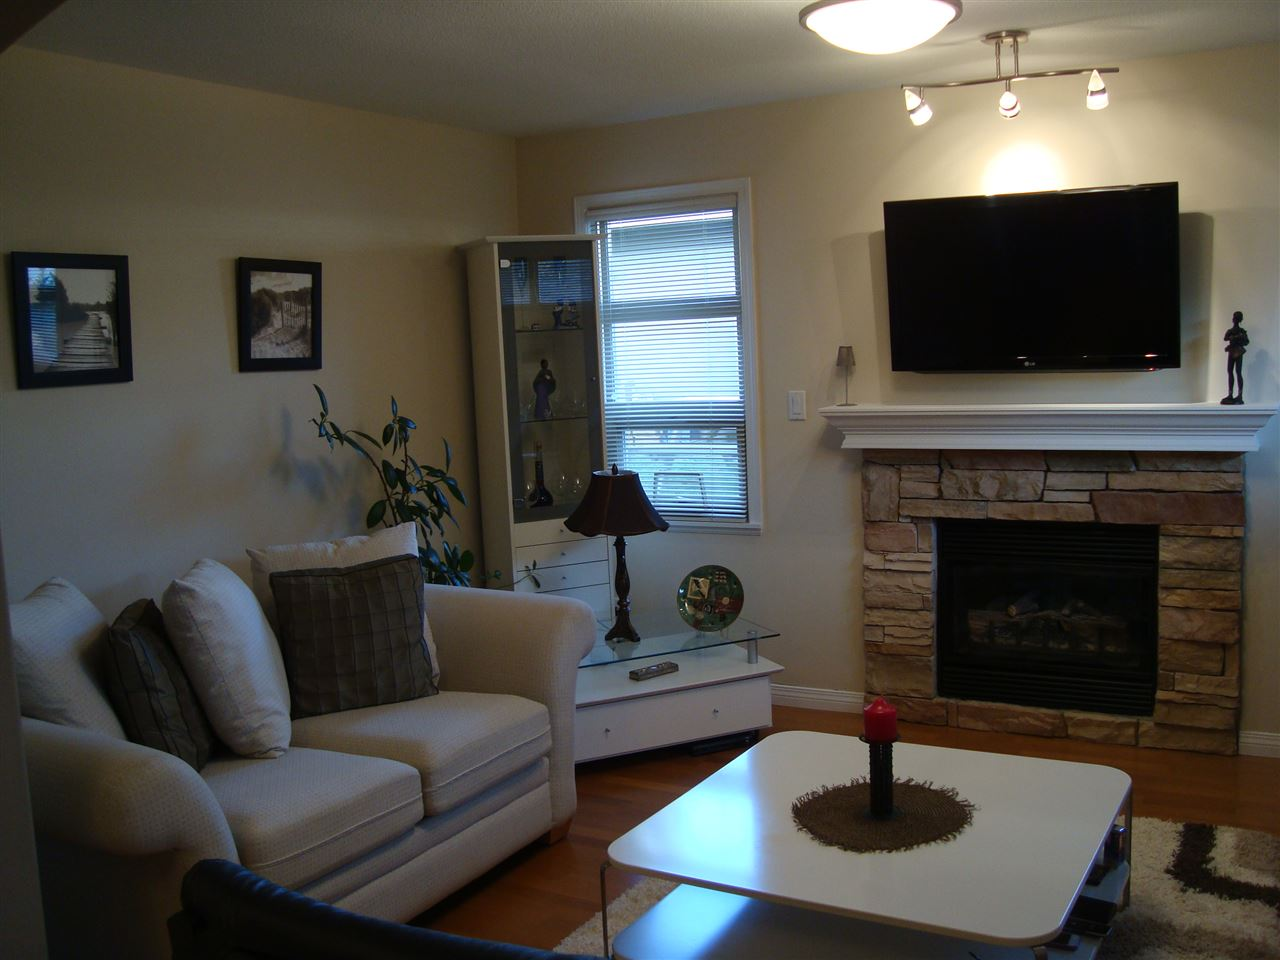 Photo 7: 7562 16TH Avenue in Burnaby: Edmonds BE House 1/2 Duplex for sale (Burnaby East)  : MLS® # R2022922